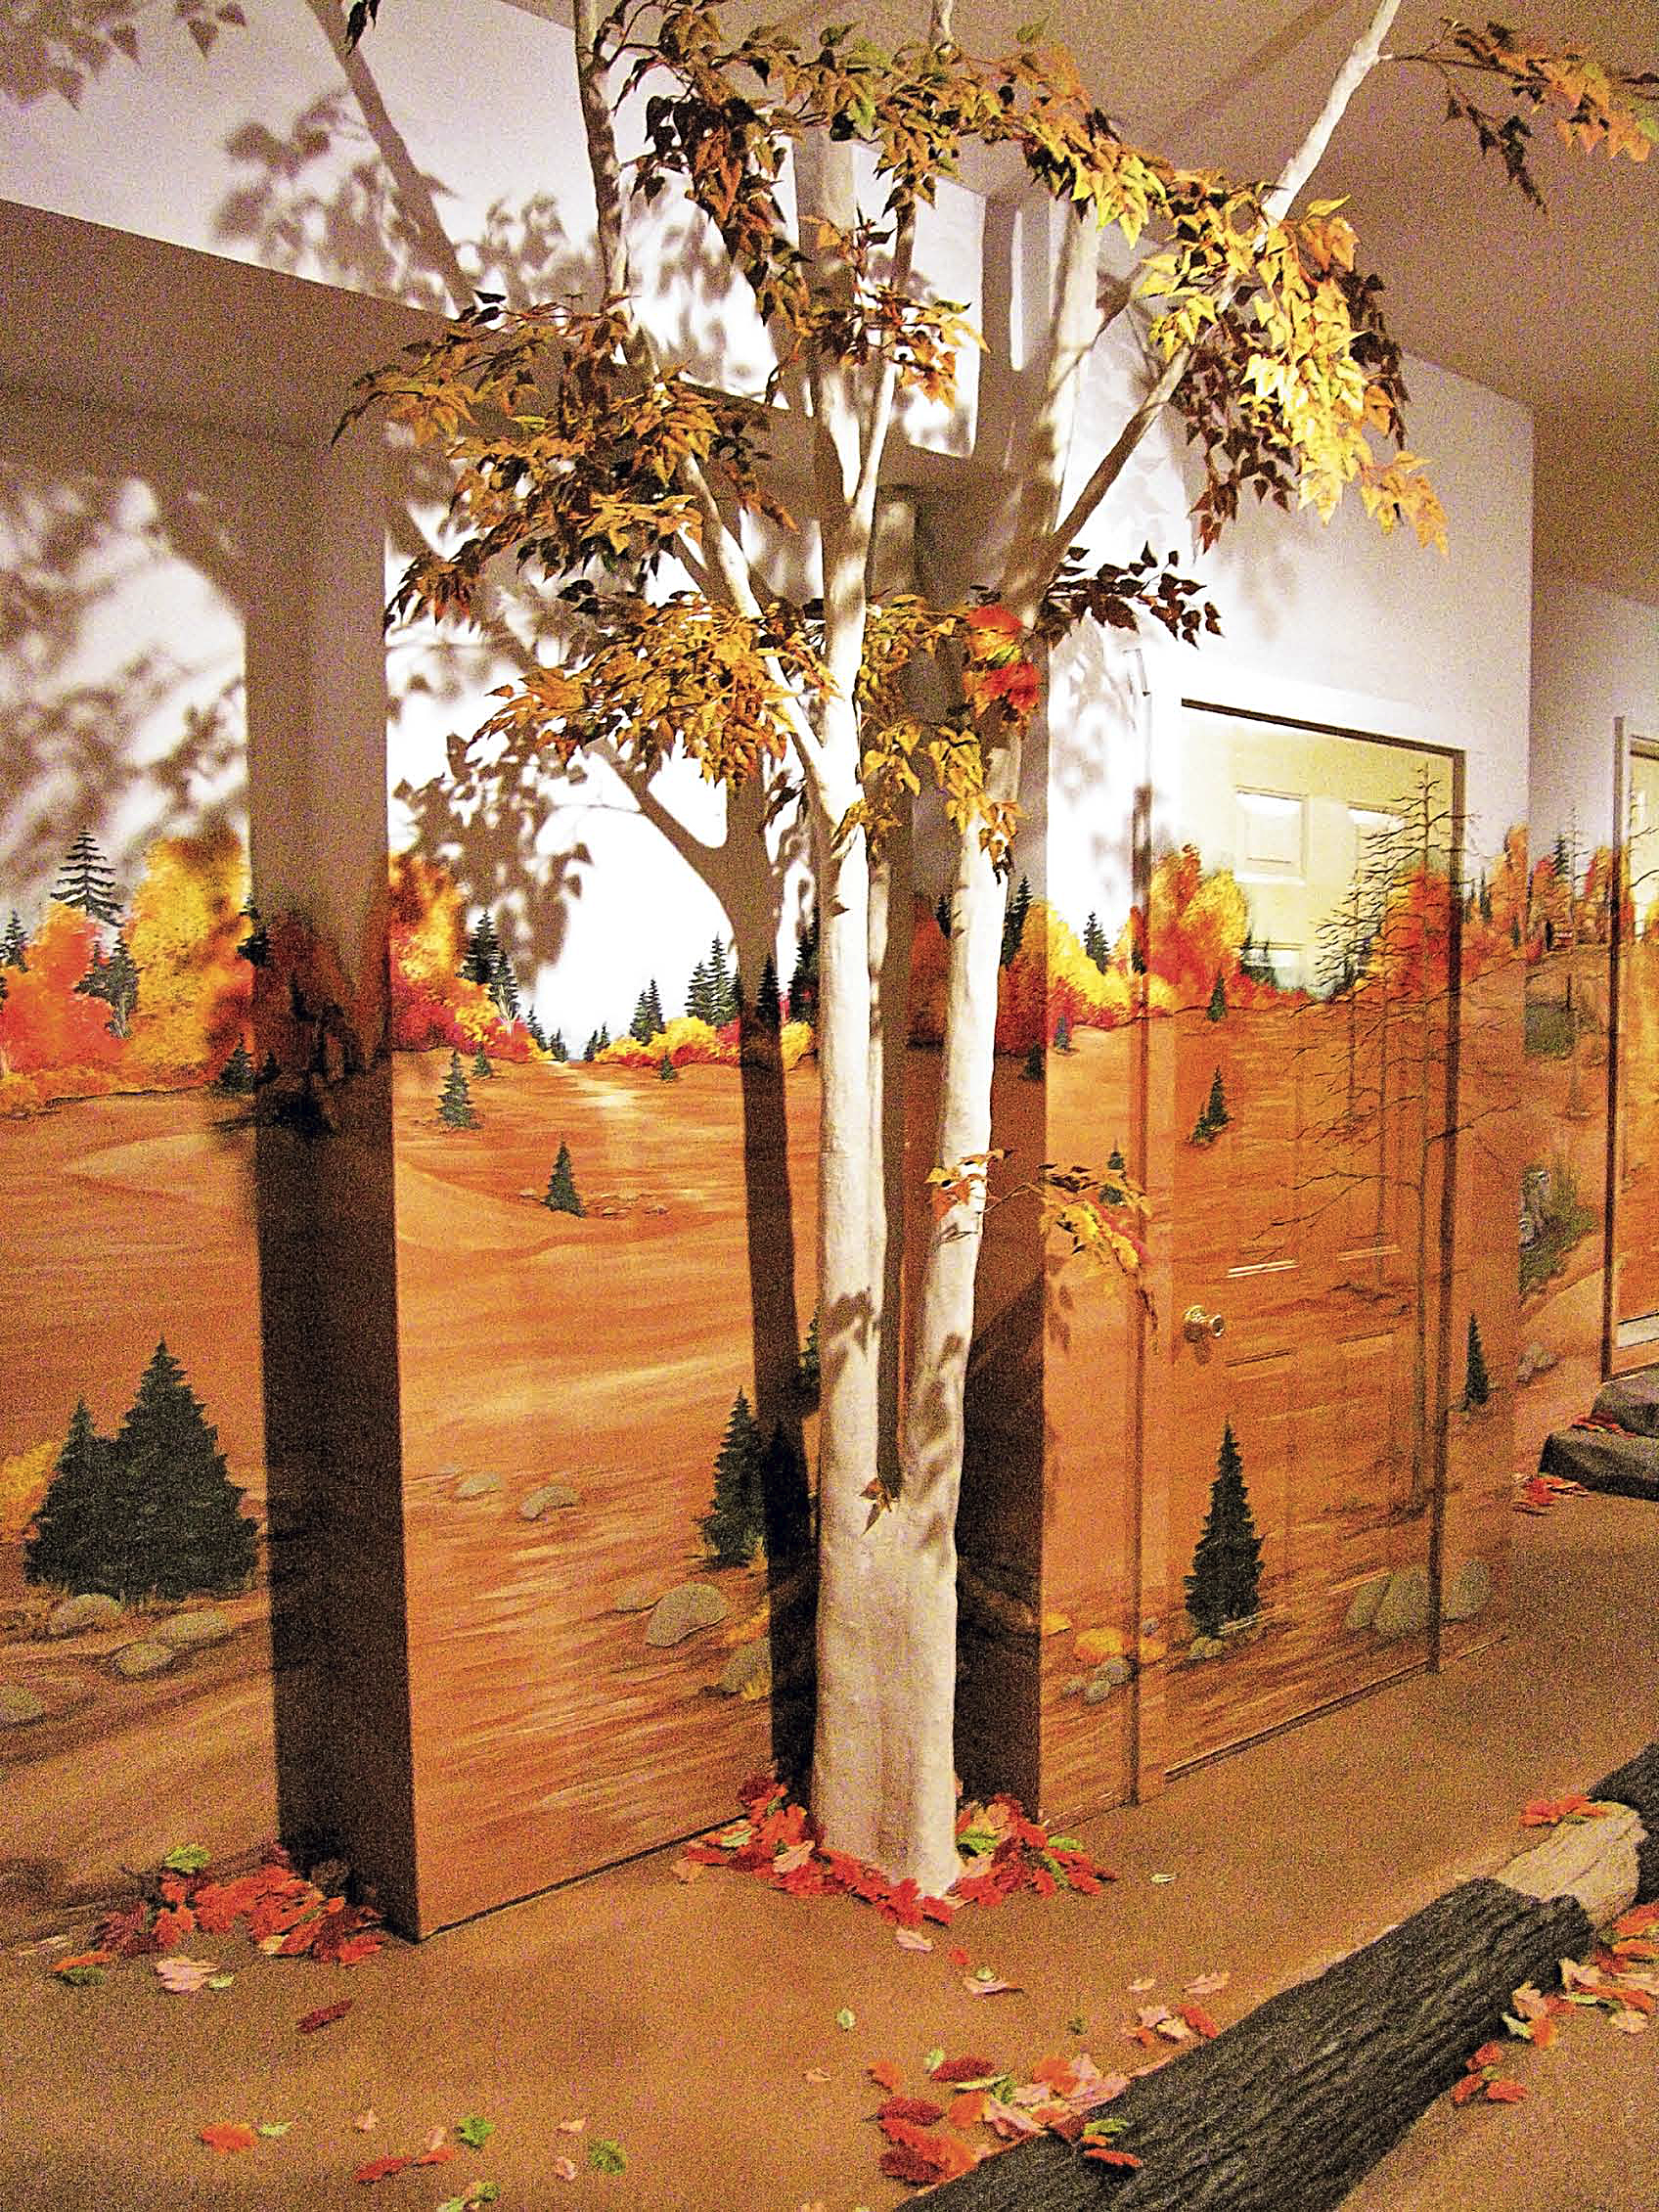 Poplar tree made of concrete stands in a room with a landscape mural on the wall that crosses over the door.